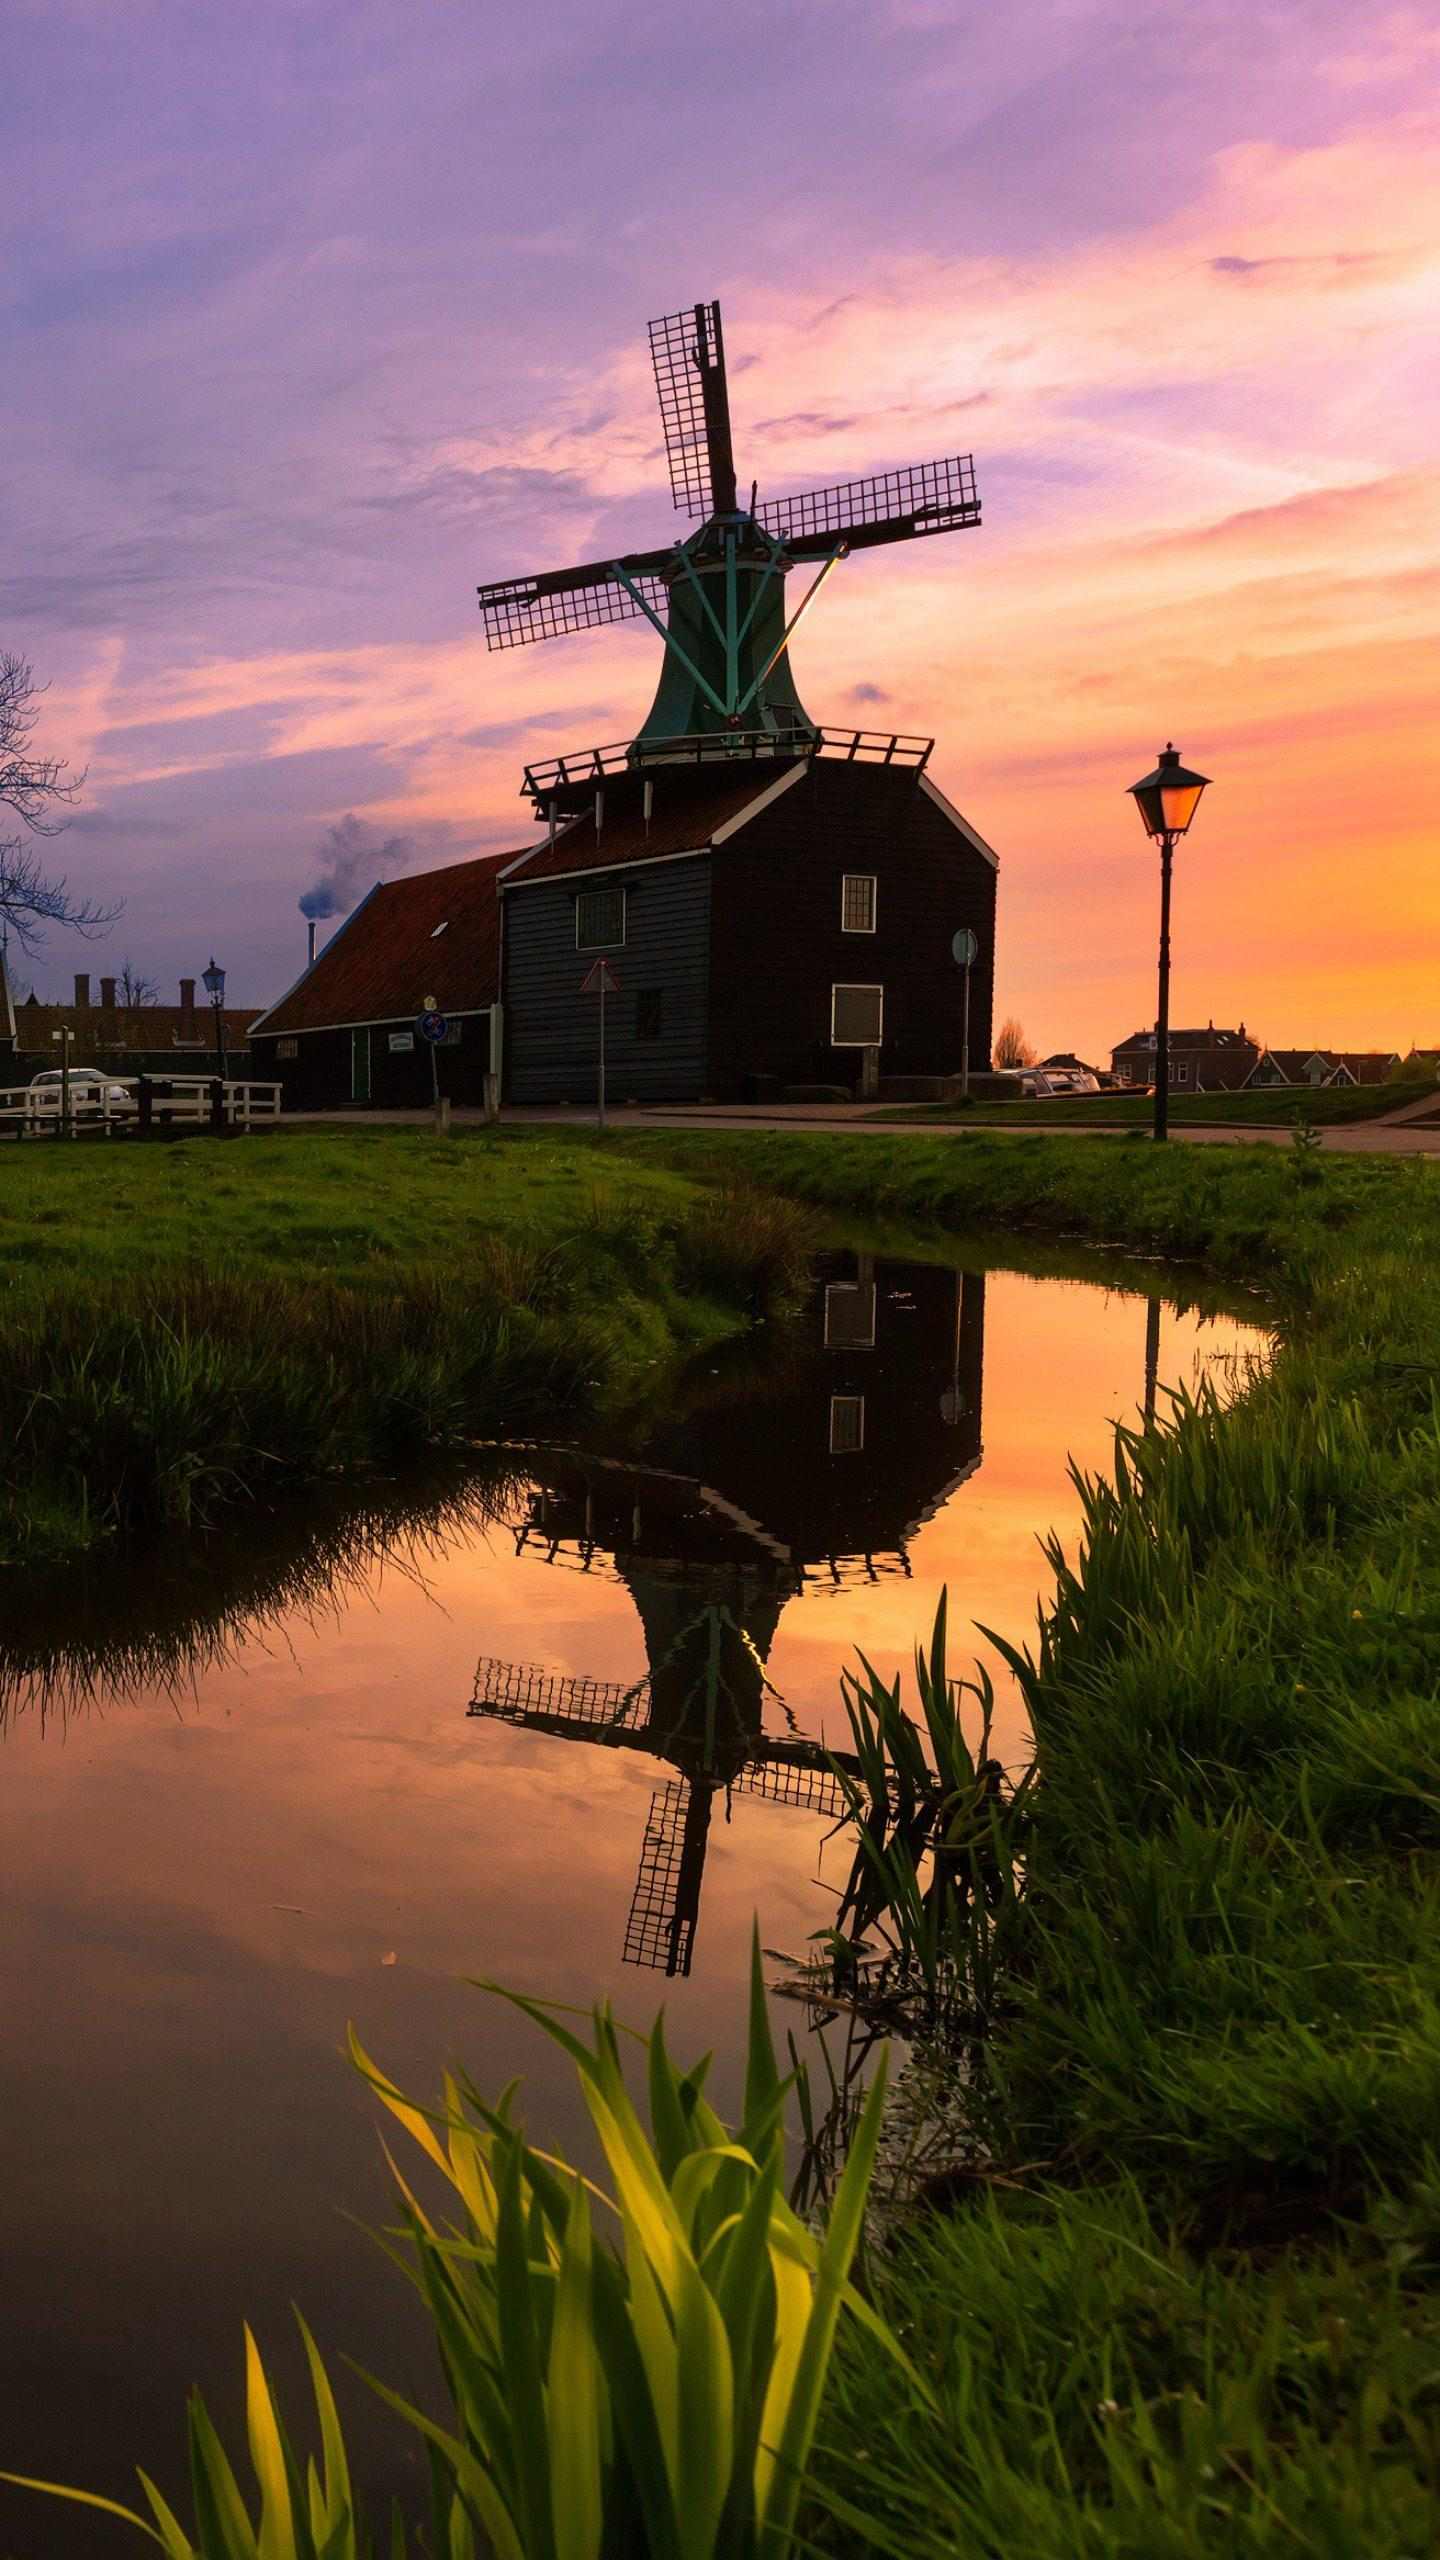 Dutch windmill village. Zaanse has preserved ancient windmills and old house buildings, and the beautiful ecological environment attracts tourists from all over the world.